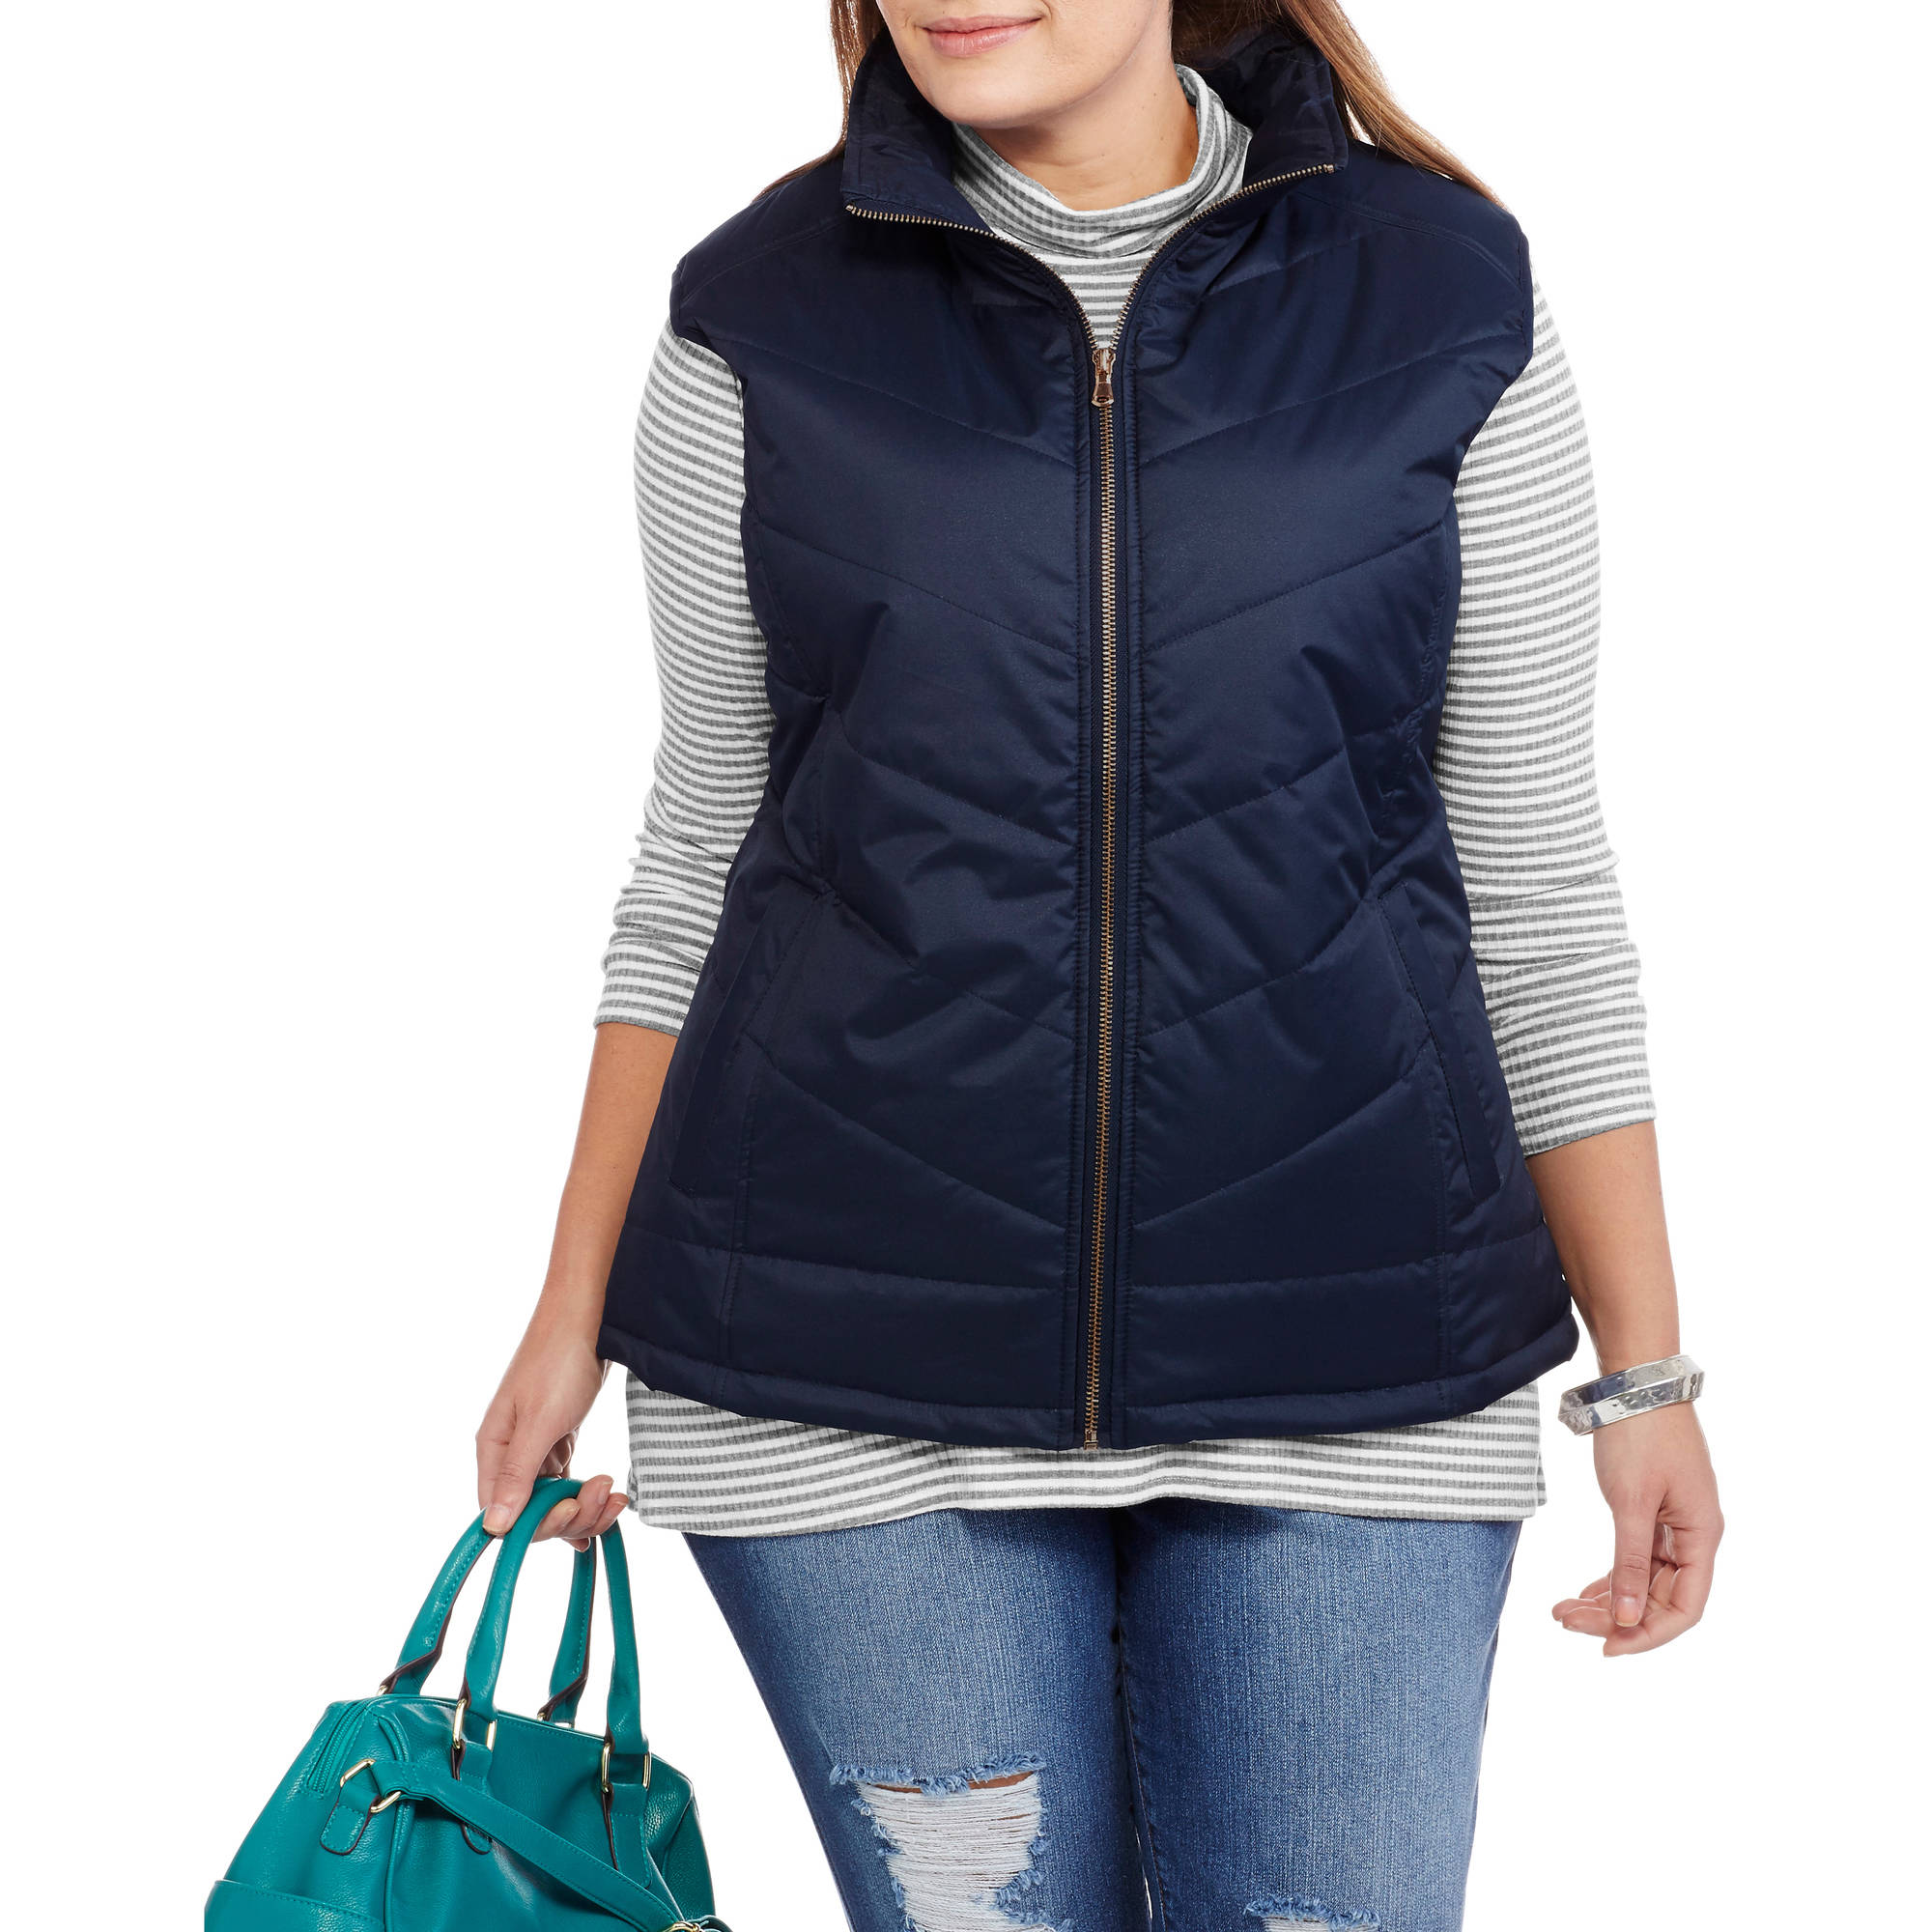 Climate Concepts Women's Plus-Size Quilted Puffer Vest With Gold Zipper